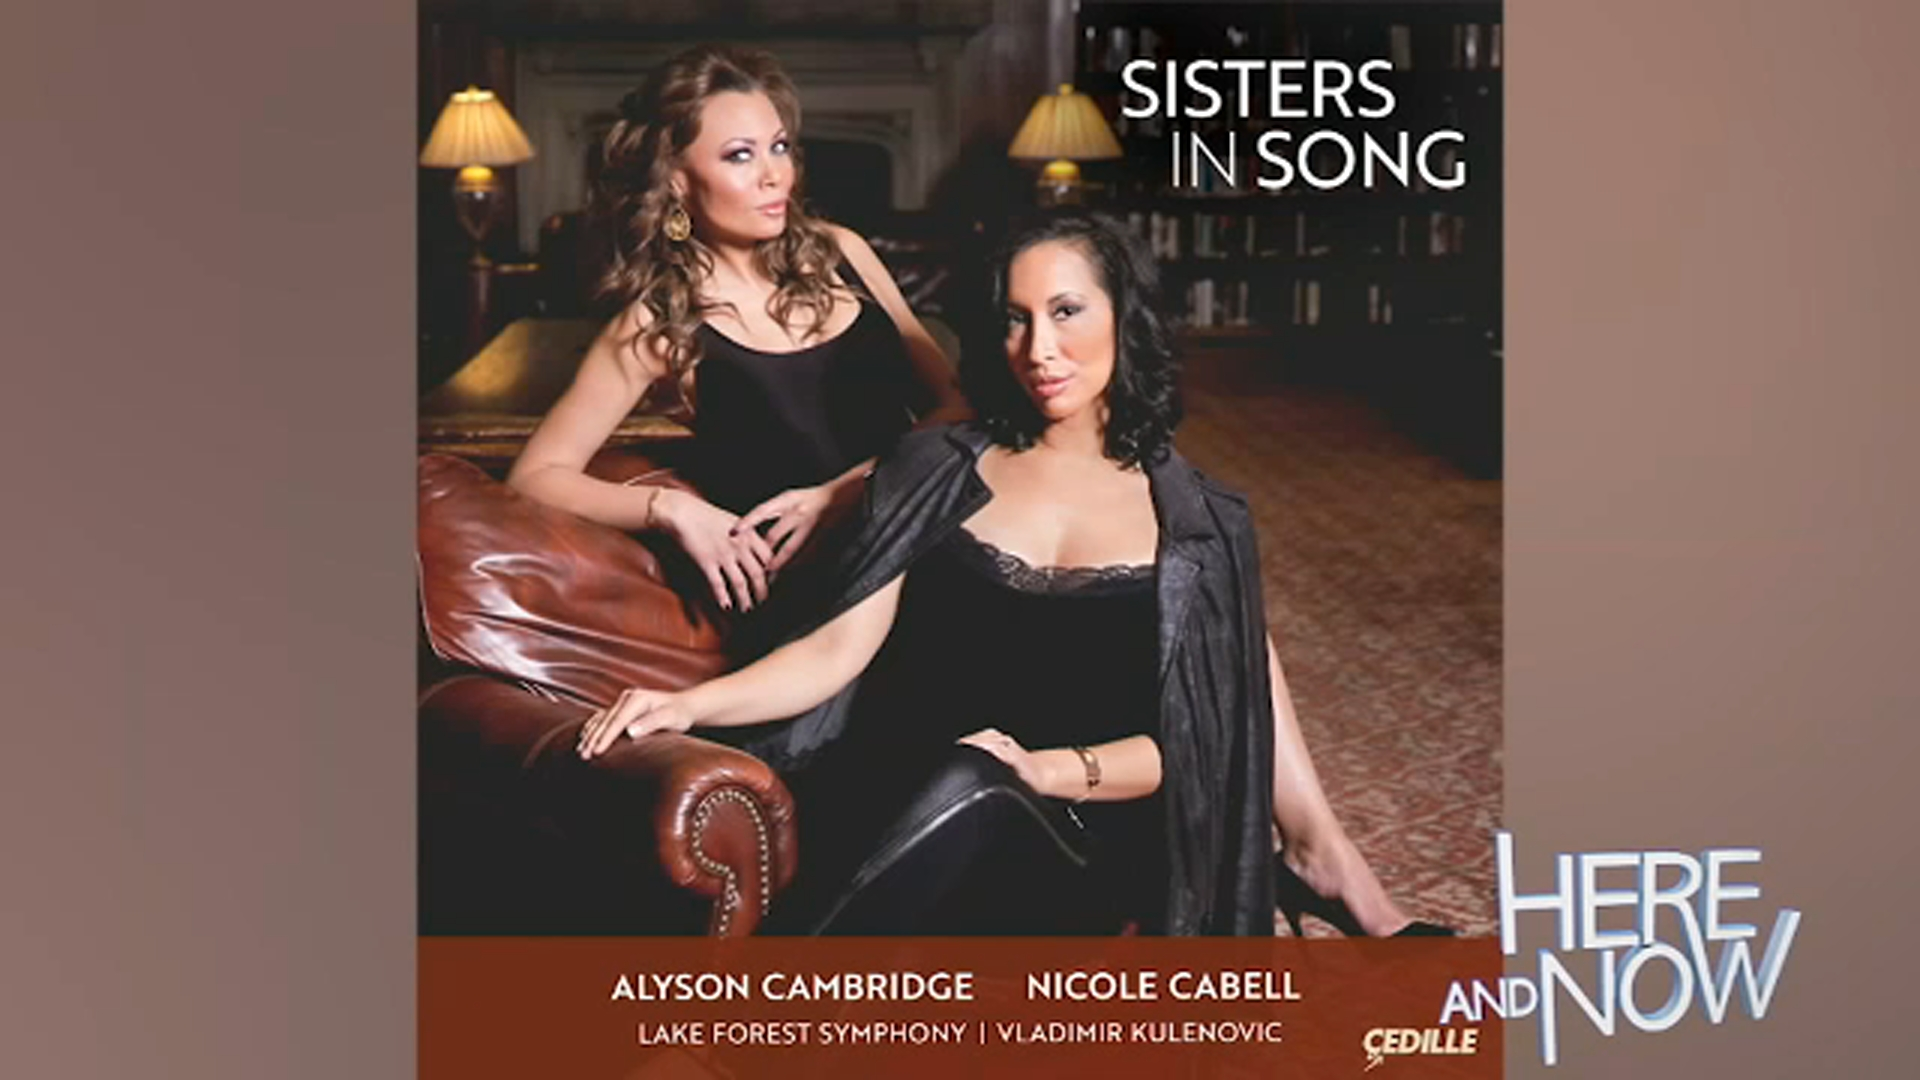 Sisters In Song is an album of classical duets recorded by acclaimed sopranos and close friends Alyson Cambridge and Nicole Cabell